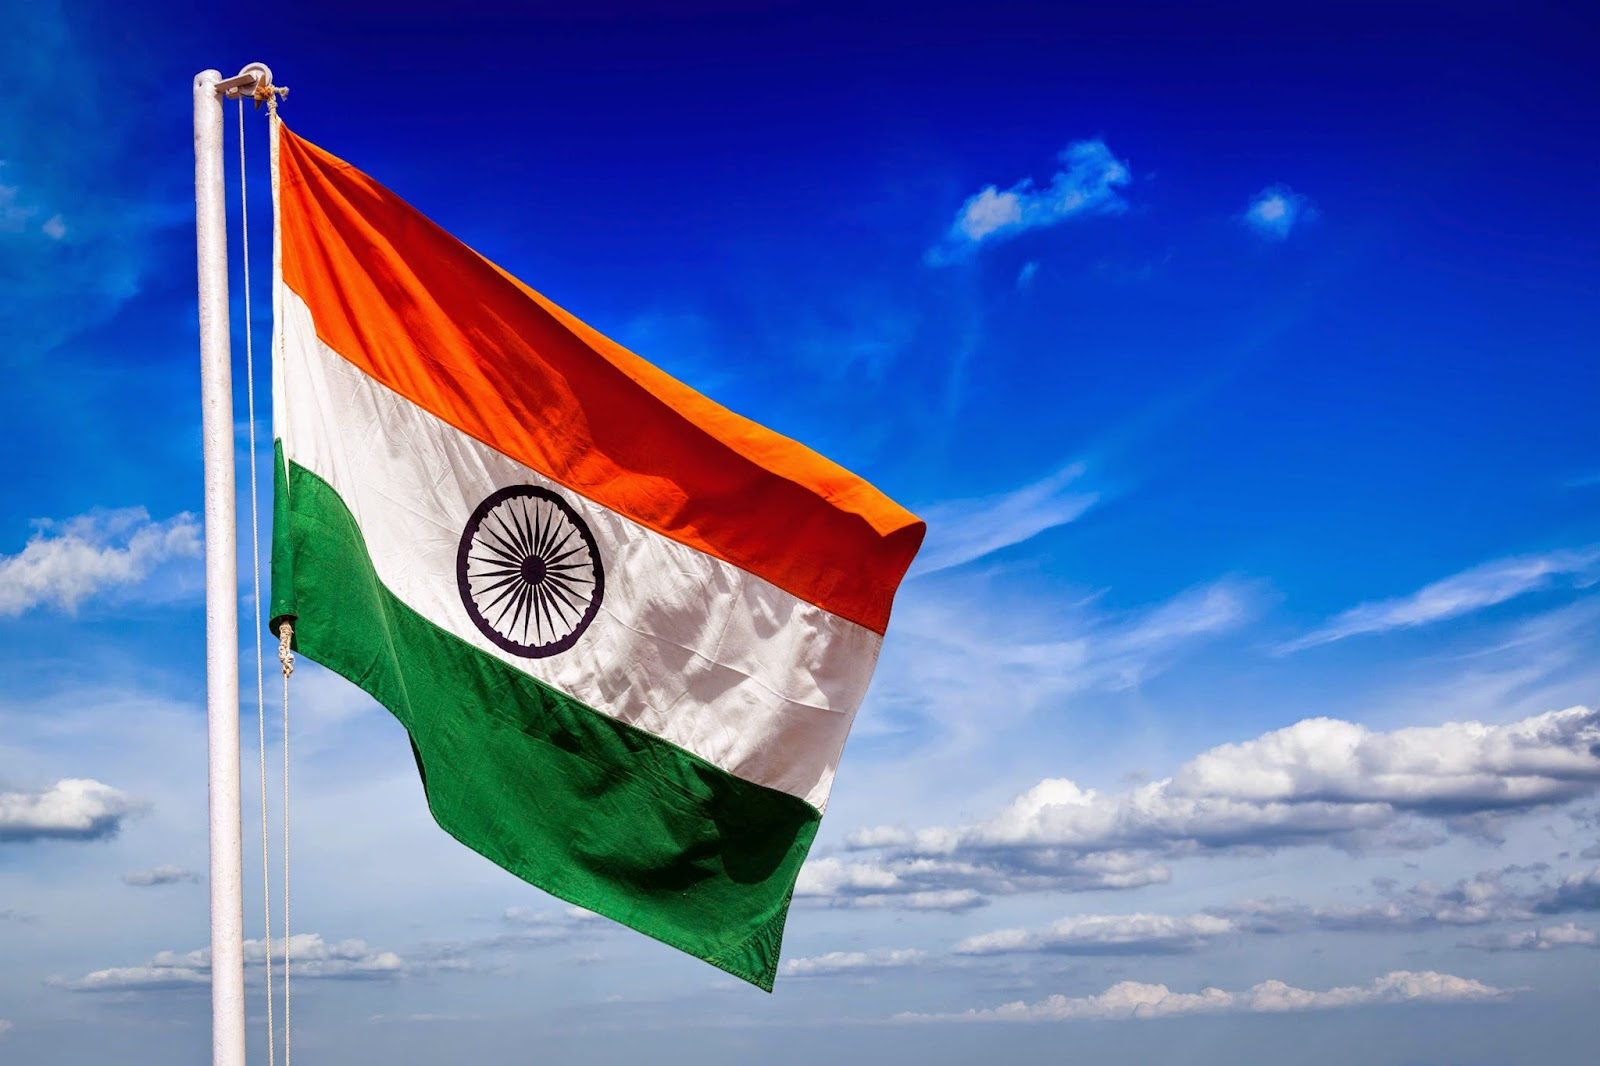 indian flag and its meaning